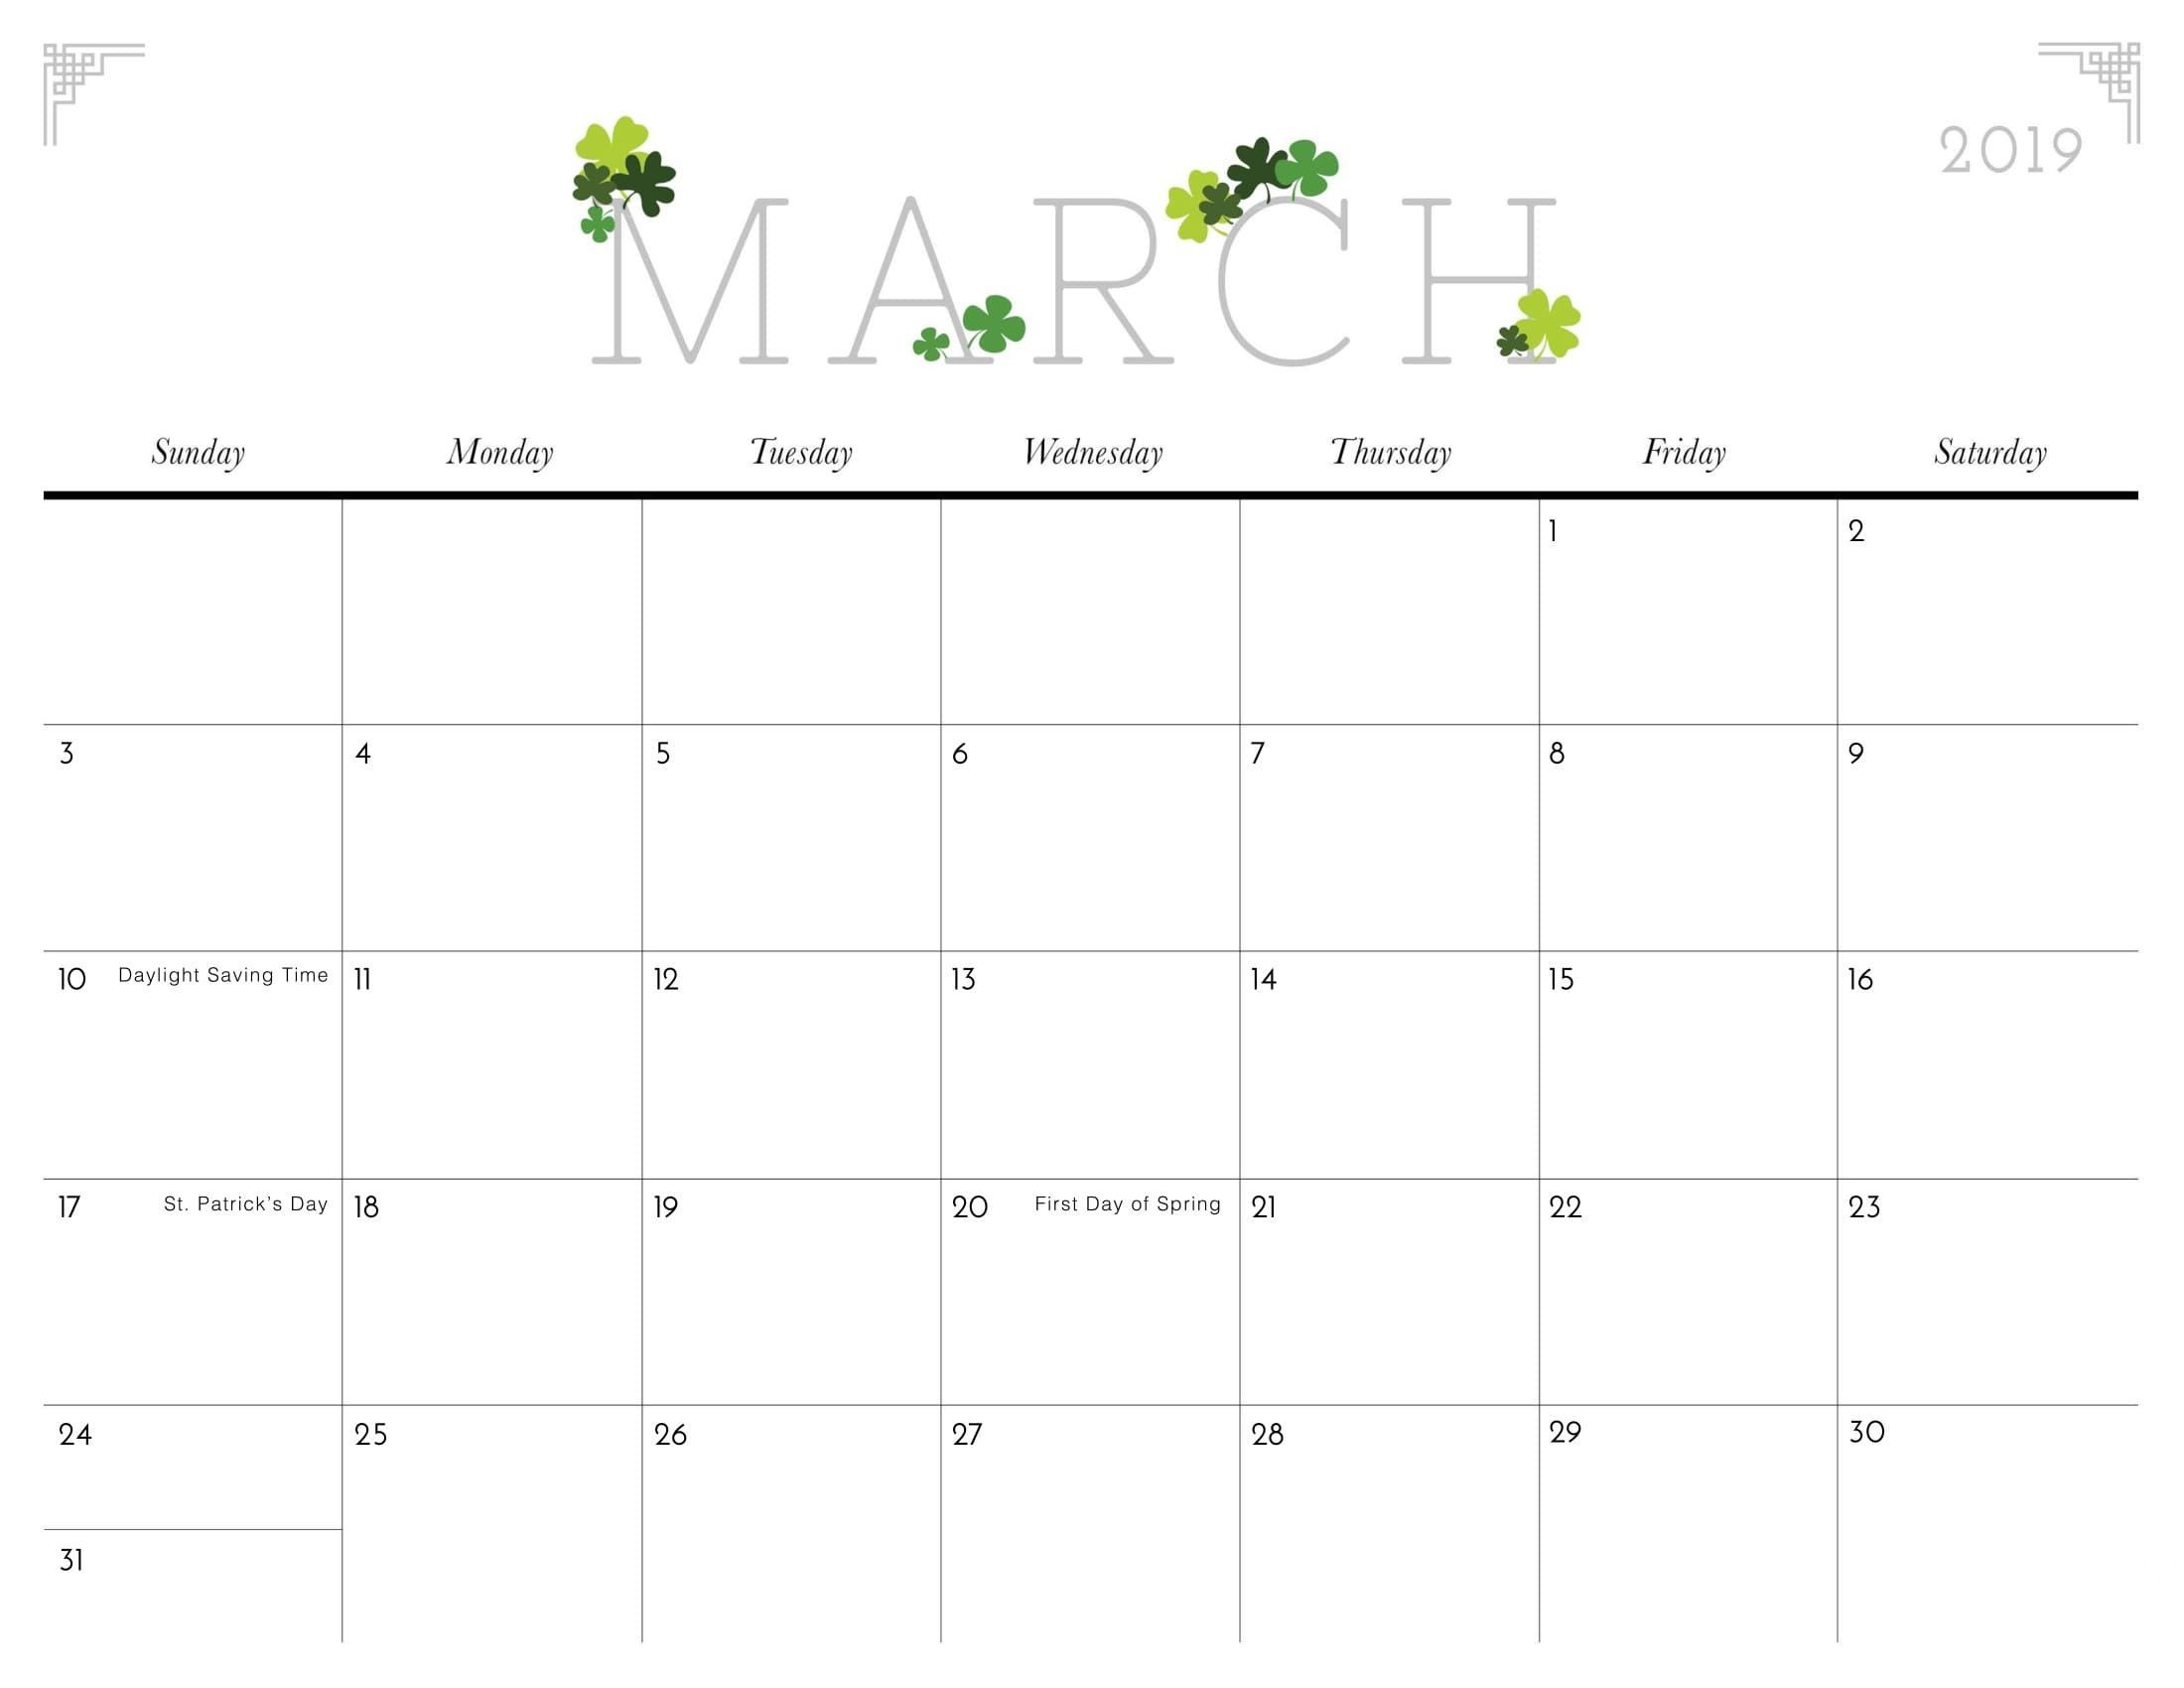 Empty Calendar March 2019 Más Caliente Cute March 2019 Calendar Template Of Empty Calendar March 2019 Más Recientemente Liberado 10 Stylish Free Printable Calendars for 2019